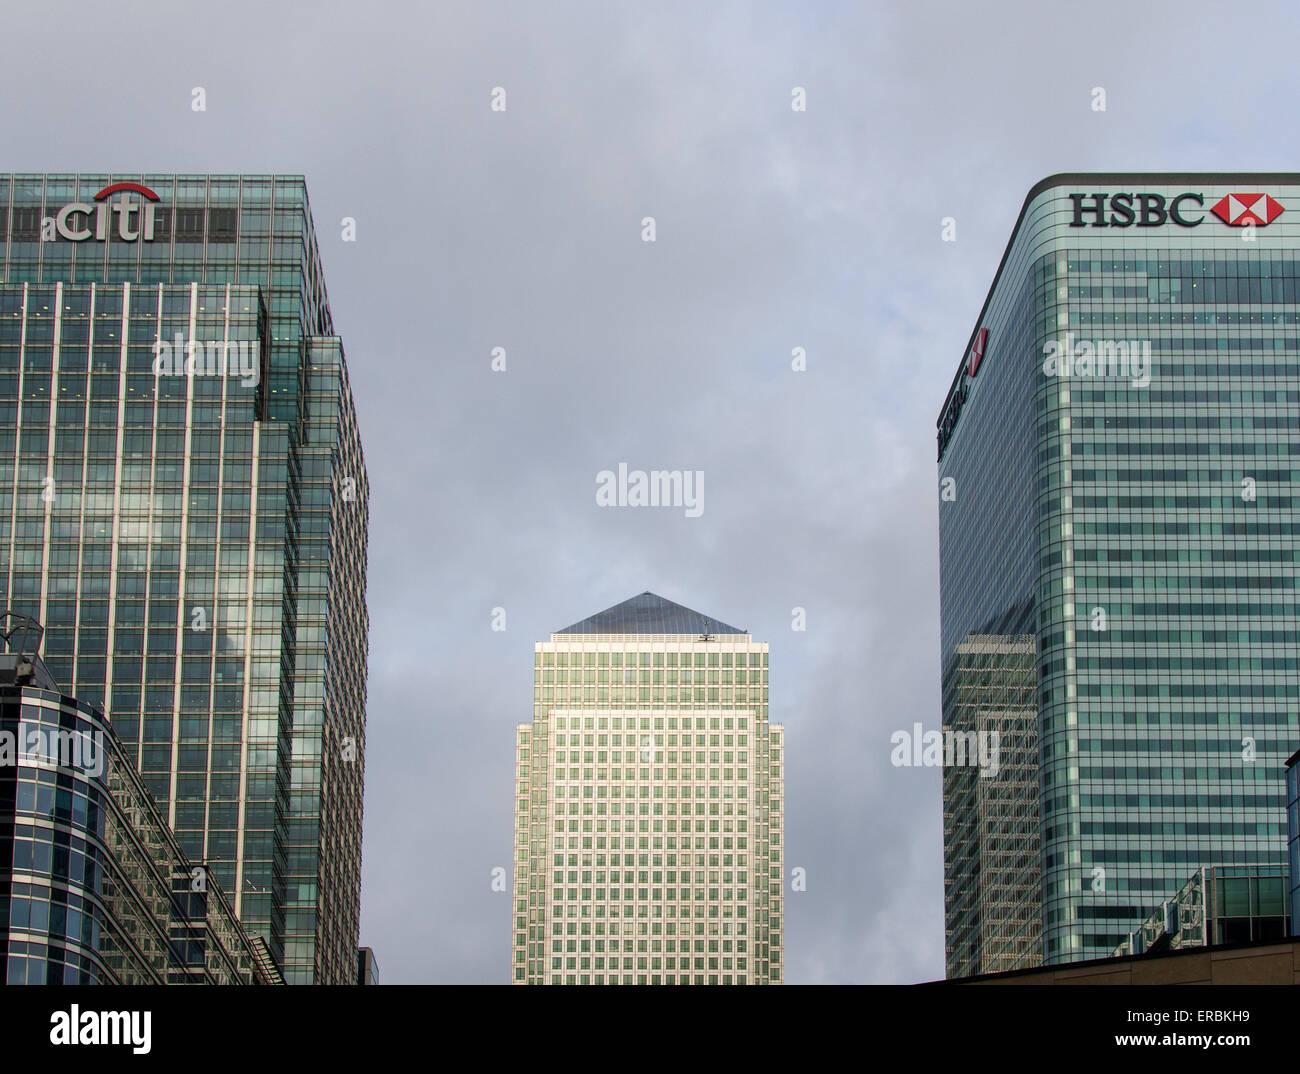 Canary Wharf, London showing the multi-occupancy One Canada Square (centre) and the HSBC building and Citibank Centre. - Stock Image